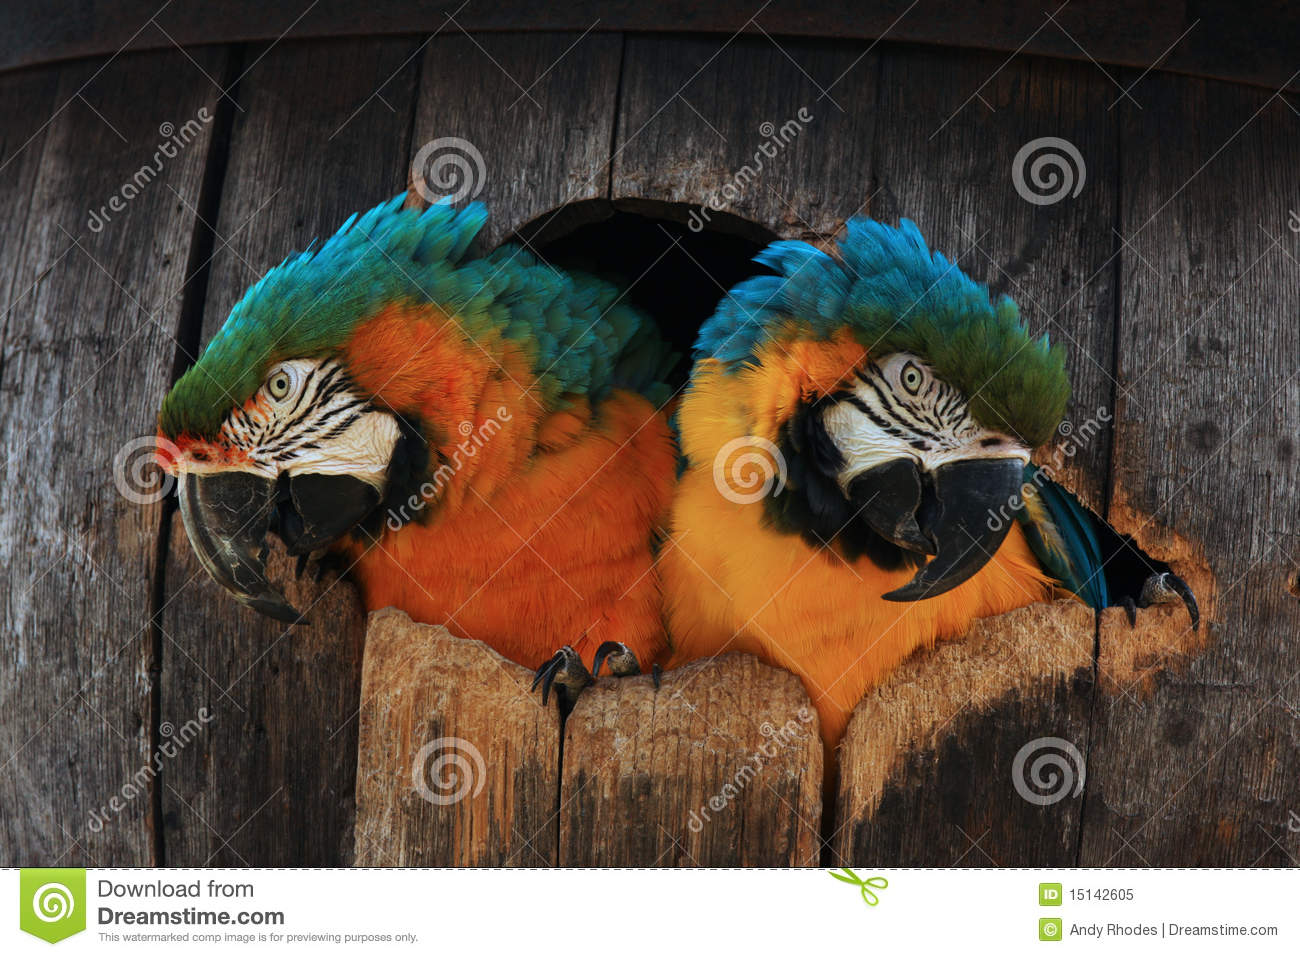 Two macaw parrots in a barrel